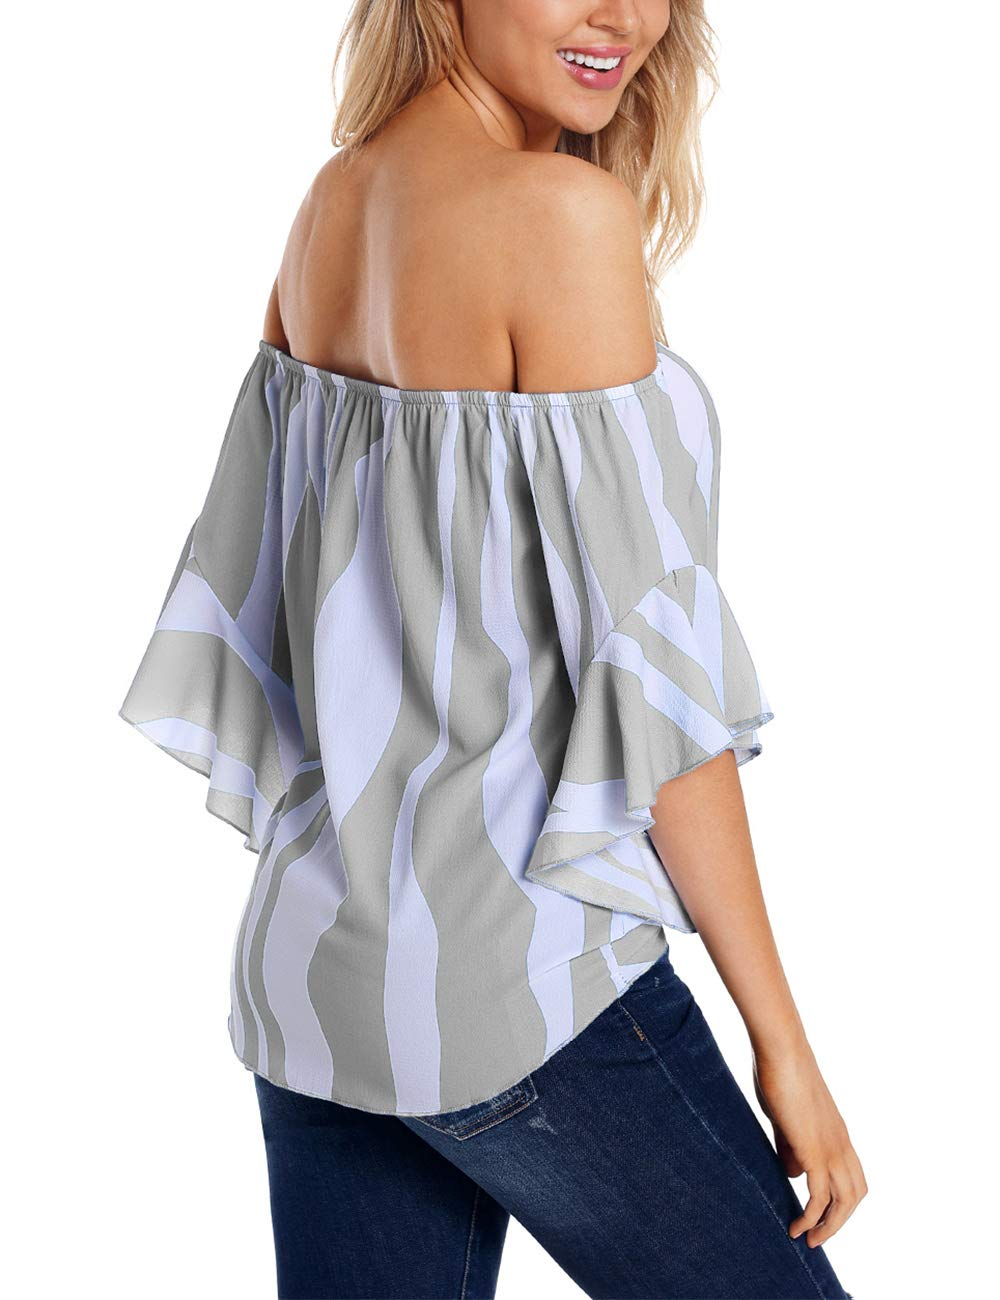 RSM &CHENG Women's Striped Off Shoulder Bell Sleeve Shirt Tie Knot Casual Blouses Tops(Stripe Grey,L)